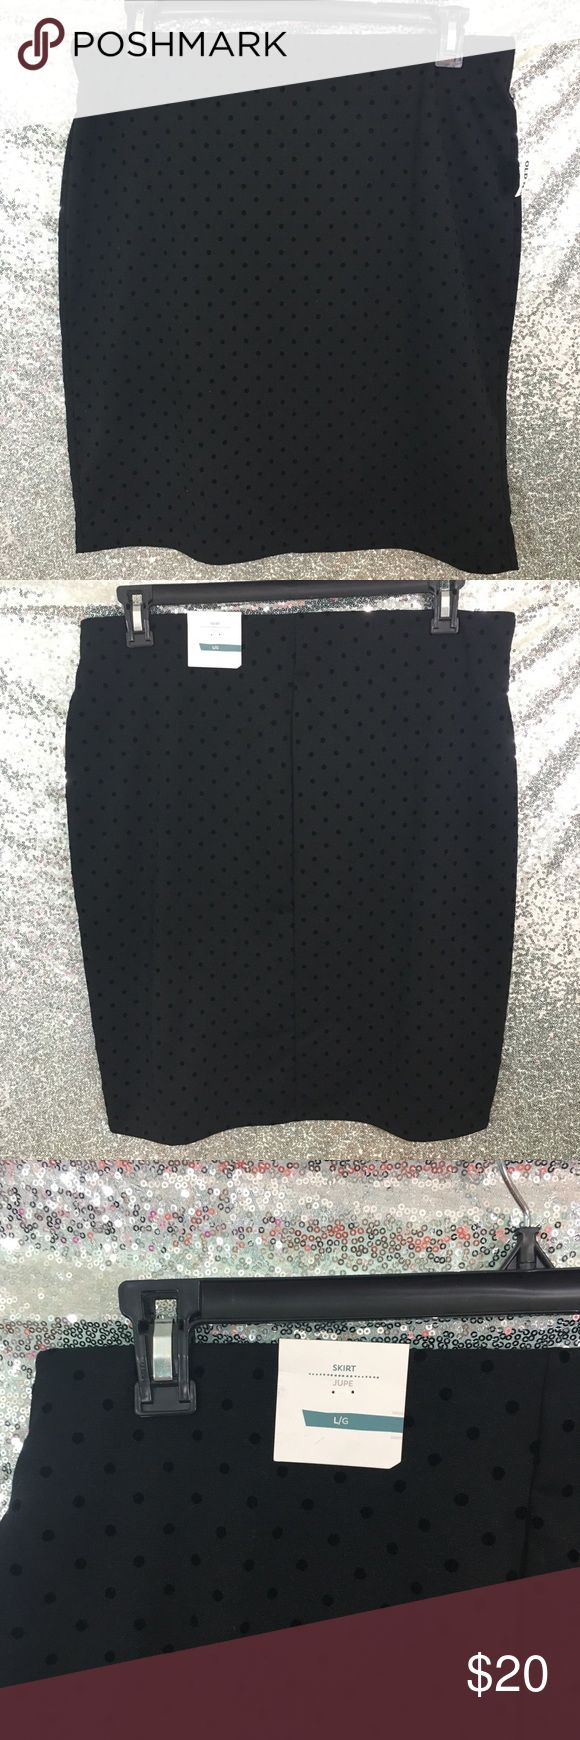 """NWT Large Black Skirt Velvet Polka Dots Brand new, elastic and comfy.  Flattering waist band and fabric.  Black skirt with velvet polka dots.  22.5"""" Long, Waist is 18"""" across flat. Old Navy Skirts"""